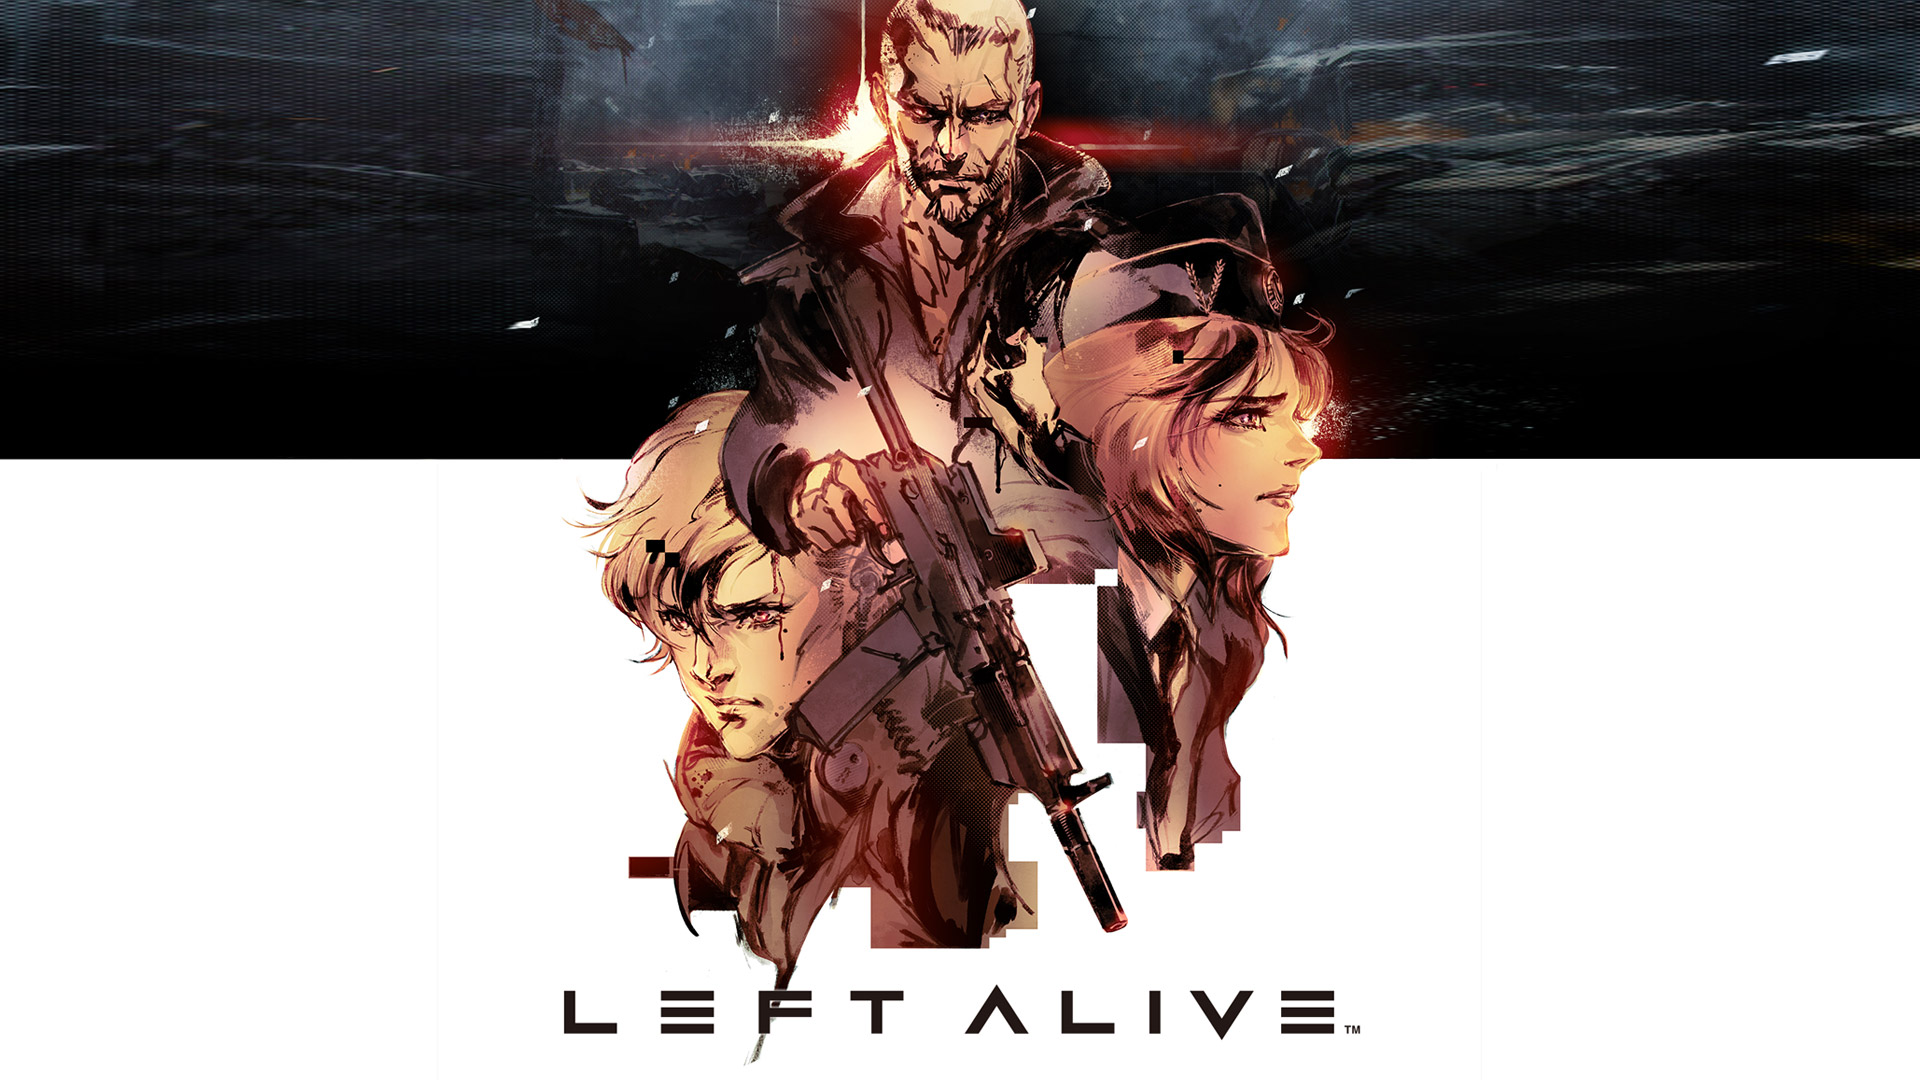 Free Left Alive Wallpaper in 1920x1080